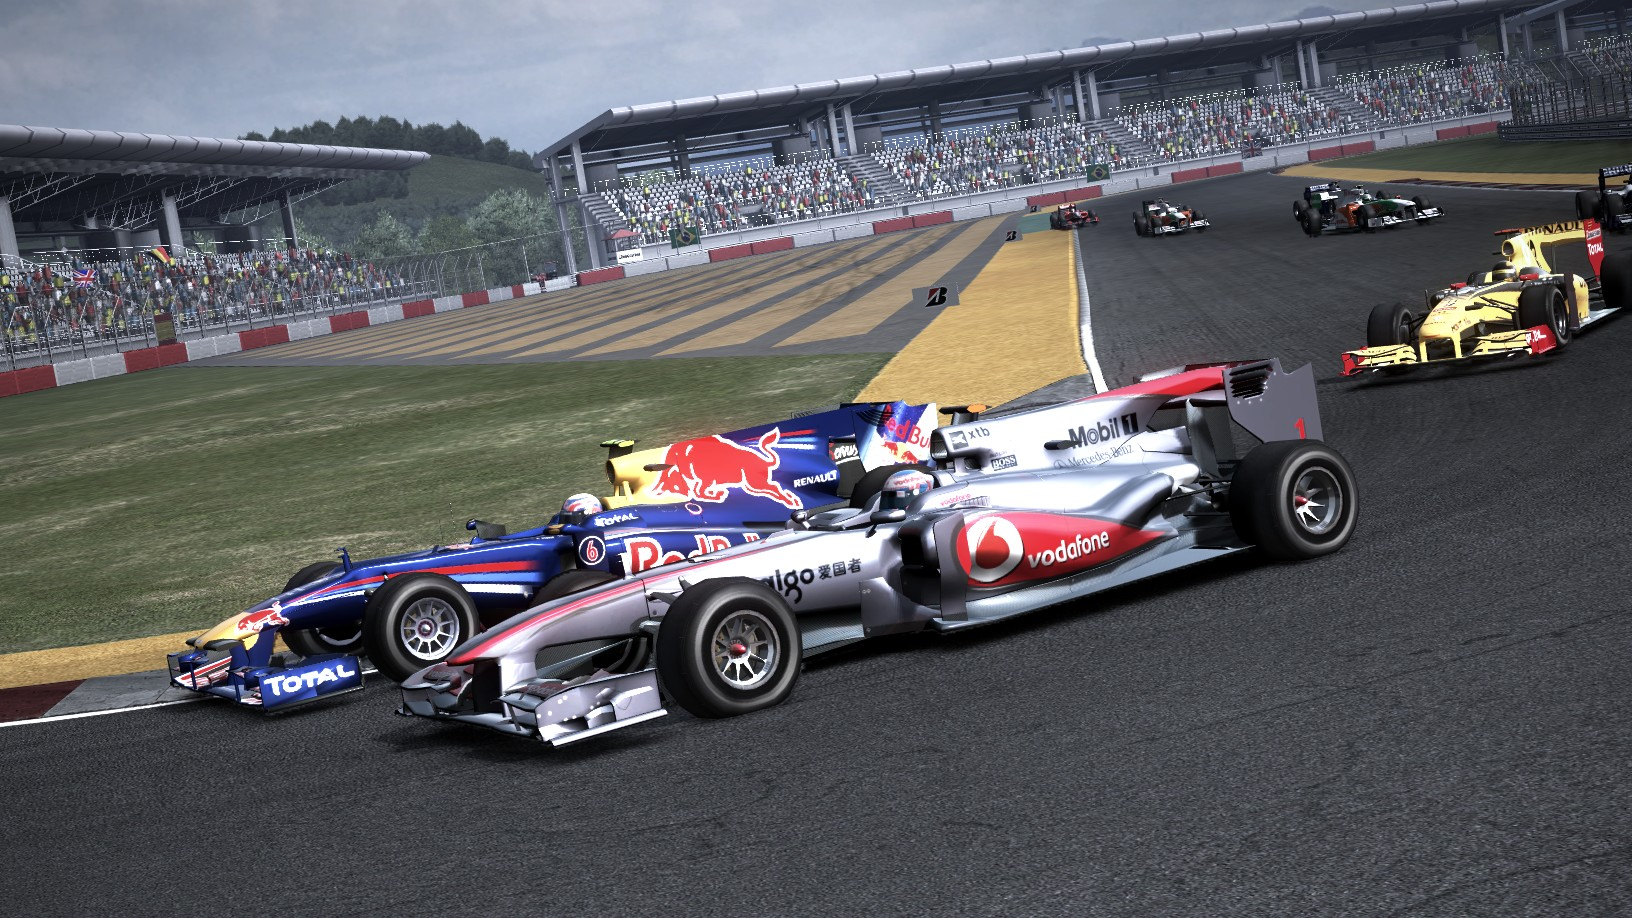 F1 2010 Playstation 3 | 15